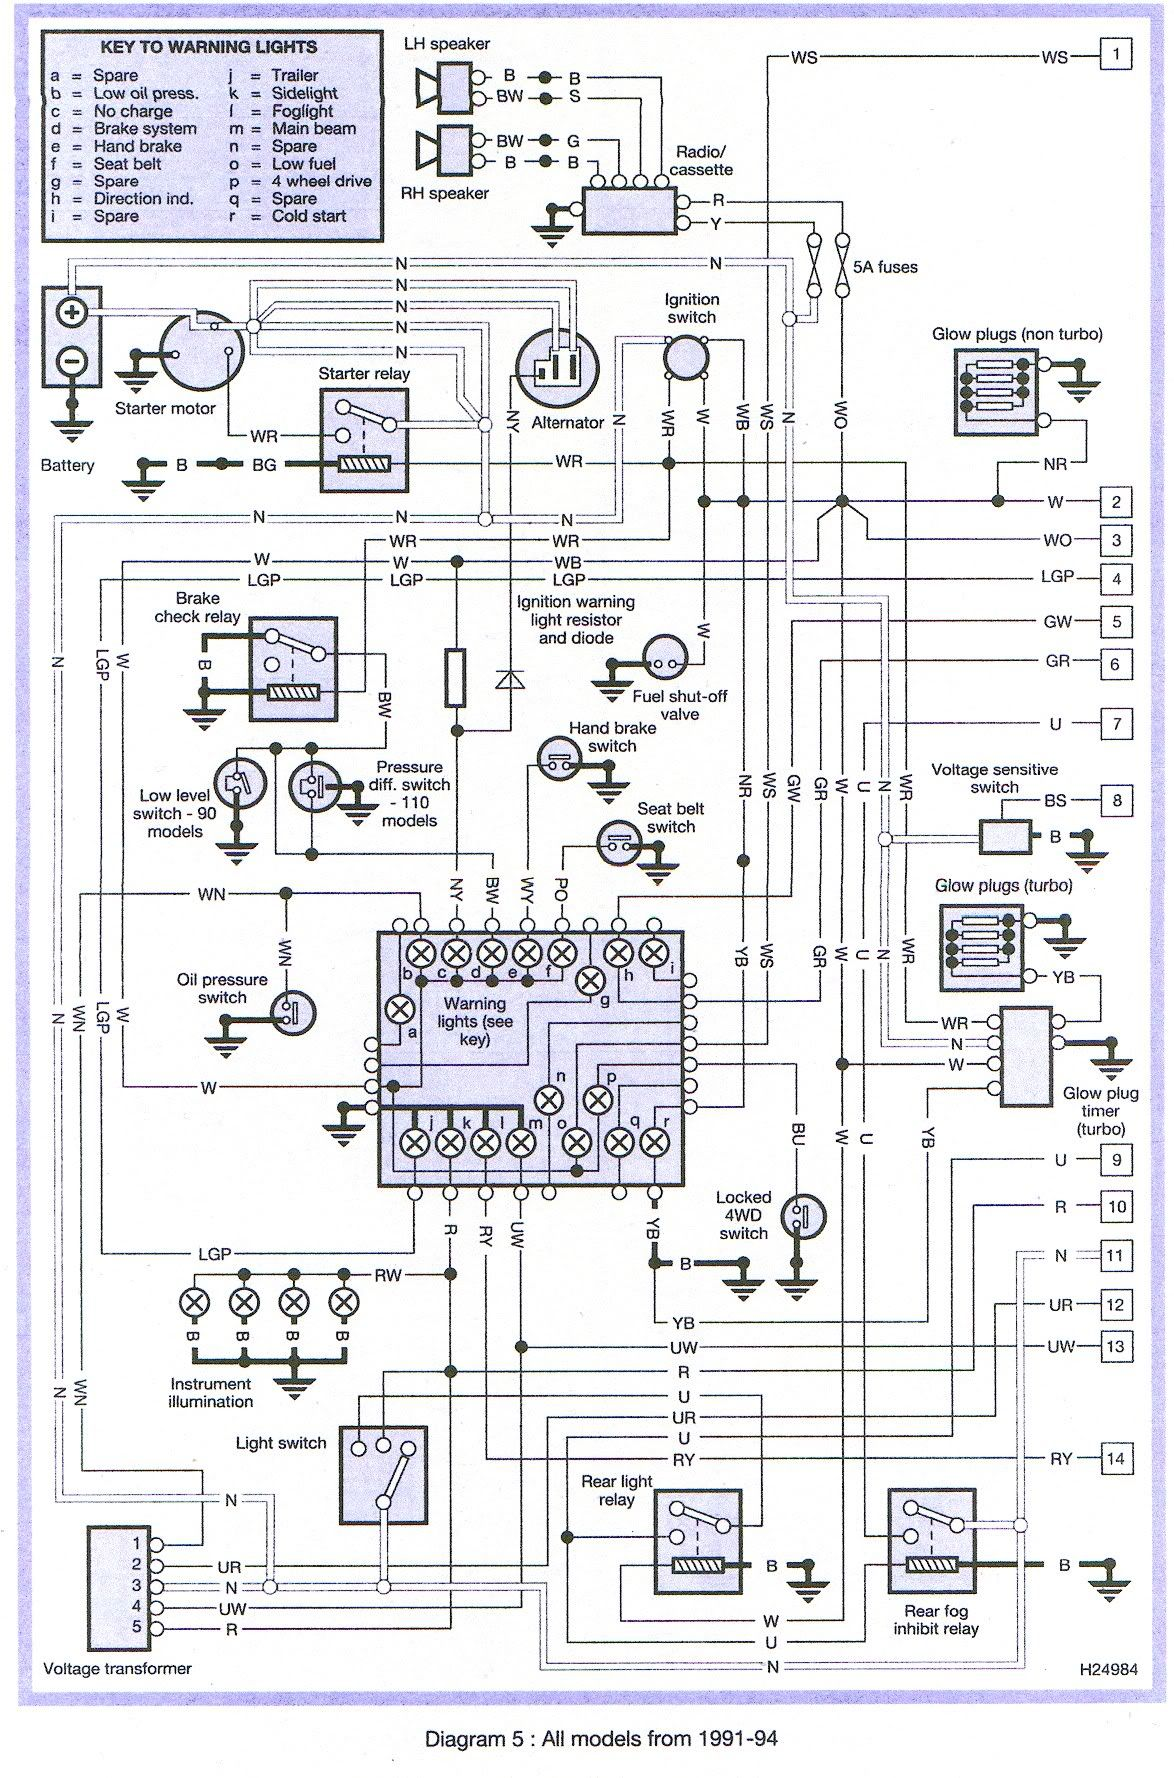 land rover discovery wiring diagram manual repair with engine rh pinterest com land rover discovery 3 wiring diagram land rover defender wiring diagram